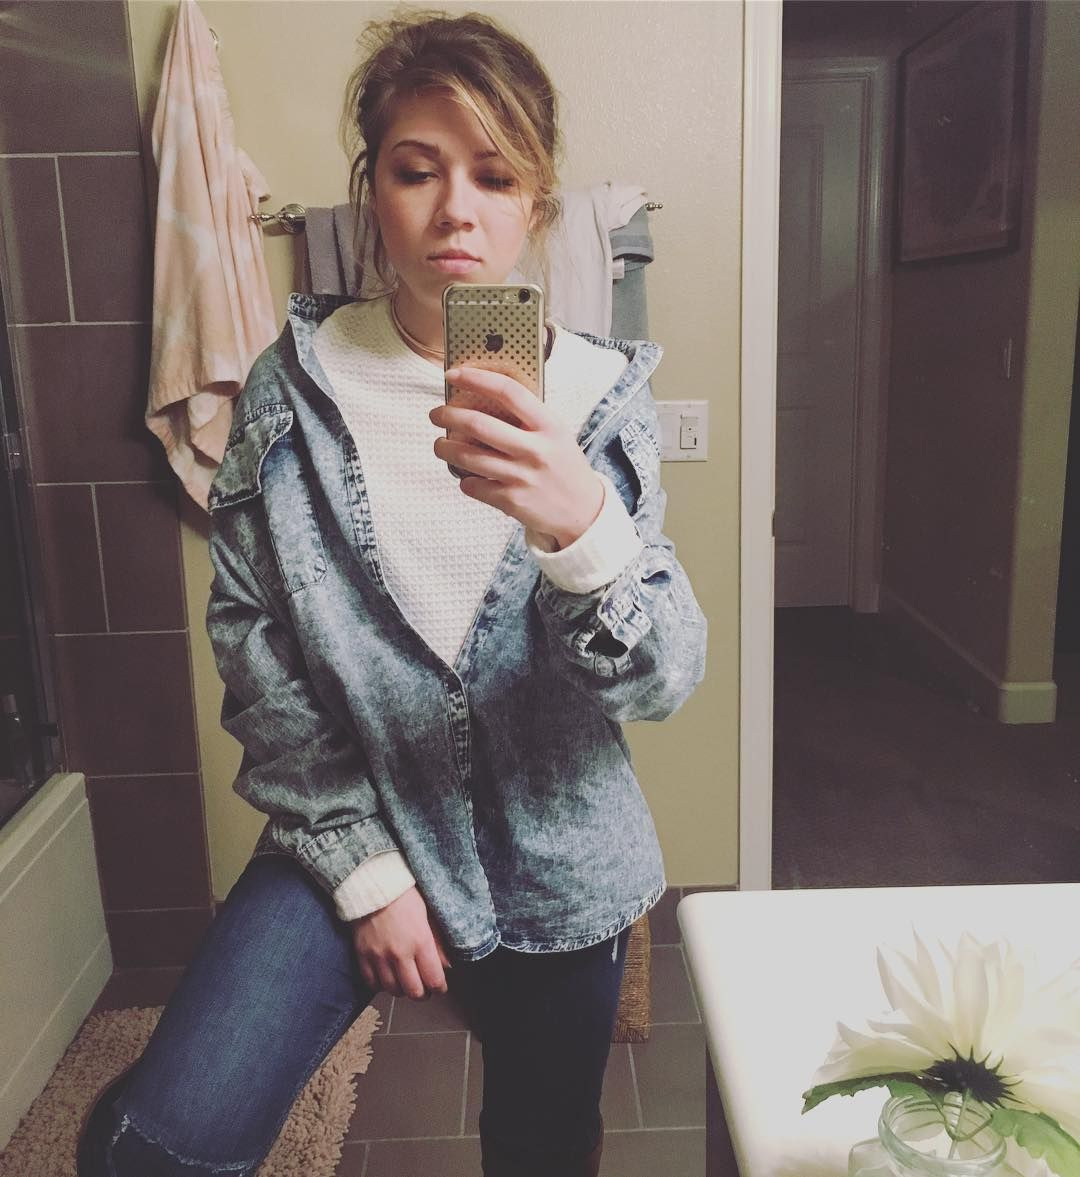 Selfie Jennette McCurdy nudes (77 photo), Sexy, Leaked, Twitter, panties 2019